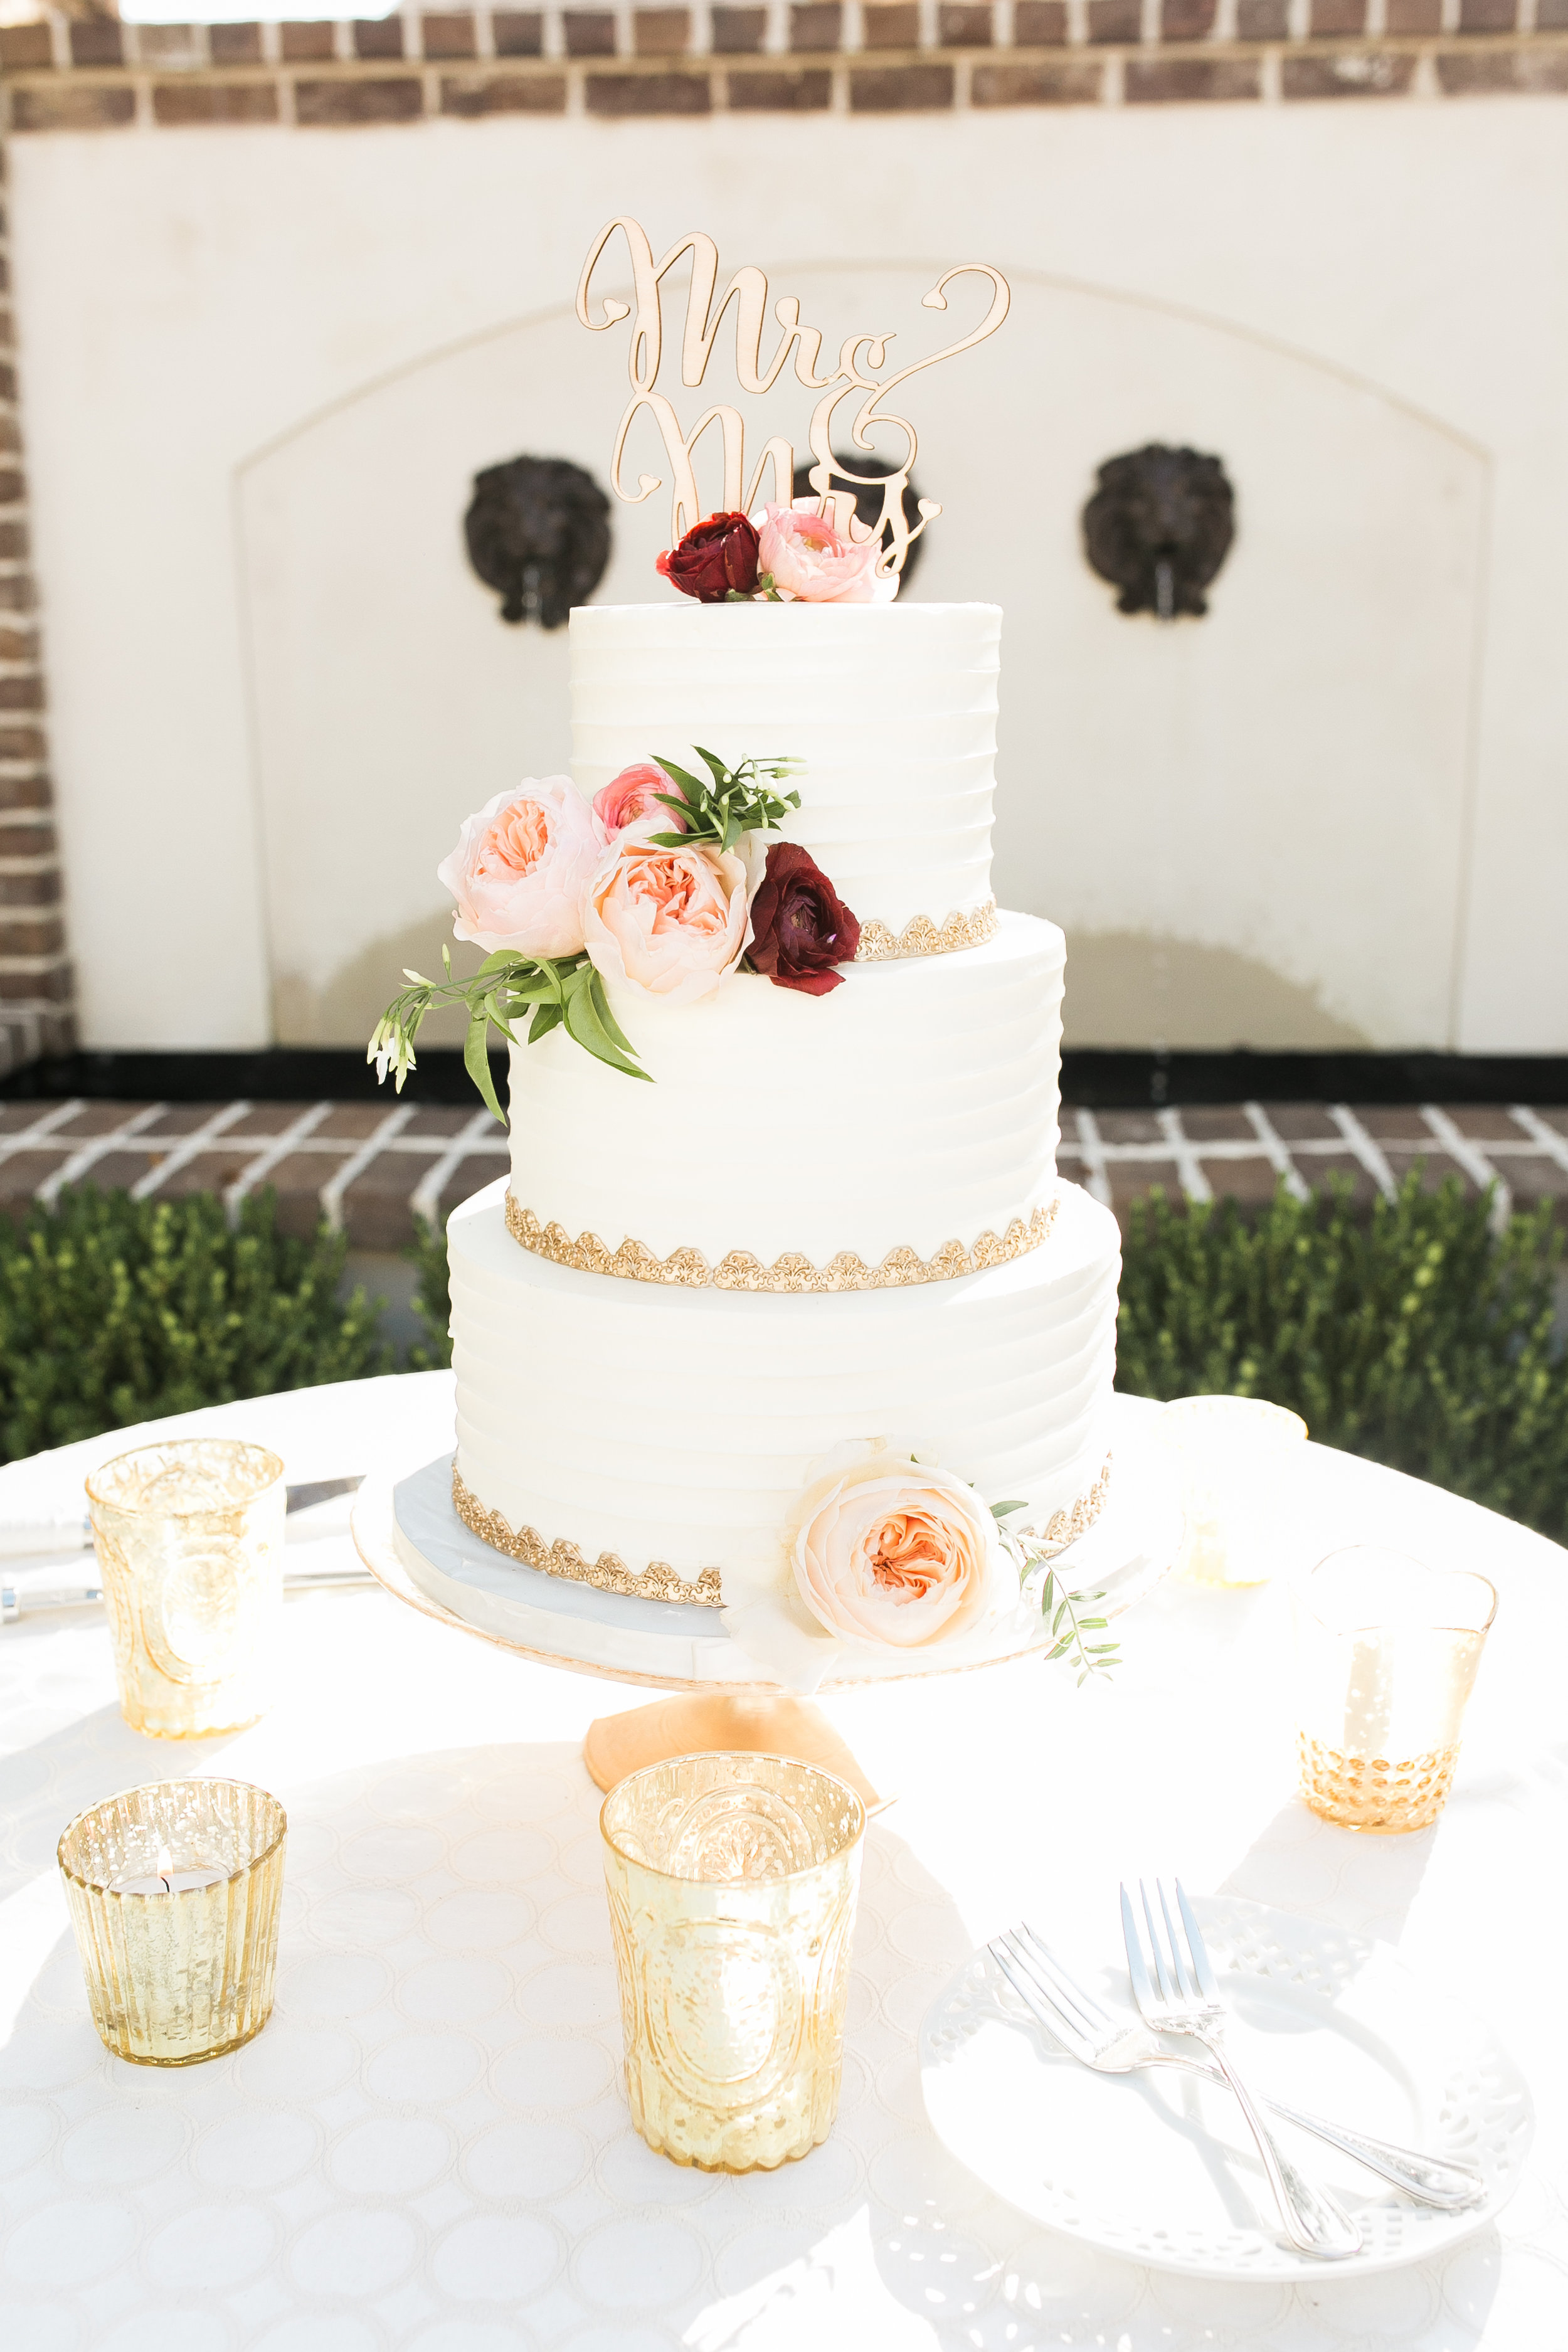 Elegant white cake with gold trim from ABCD Cakes at wedding in Charleston, SC  Colorful outdoor reception at The Thomas Bennett House wedding in Charleston, SC  //  photographed by Jenna Weddings  Traditional wedding ceremony at Cathedral of St. John the Baptist in Charleston, SC  //  A Lowcountry Wedding Magazine & Blog